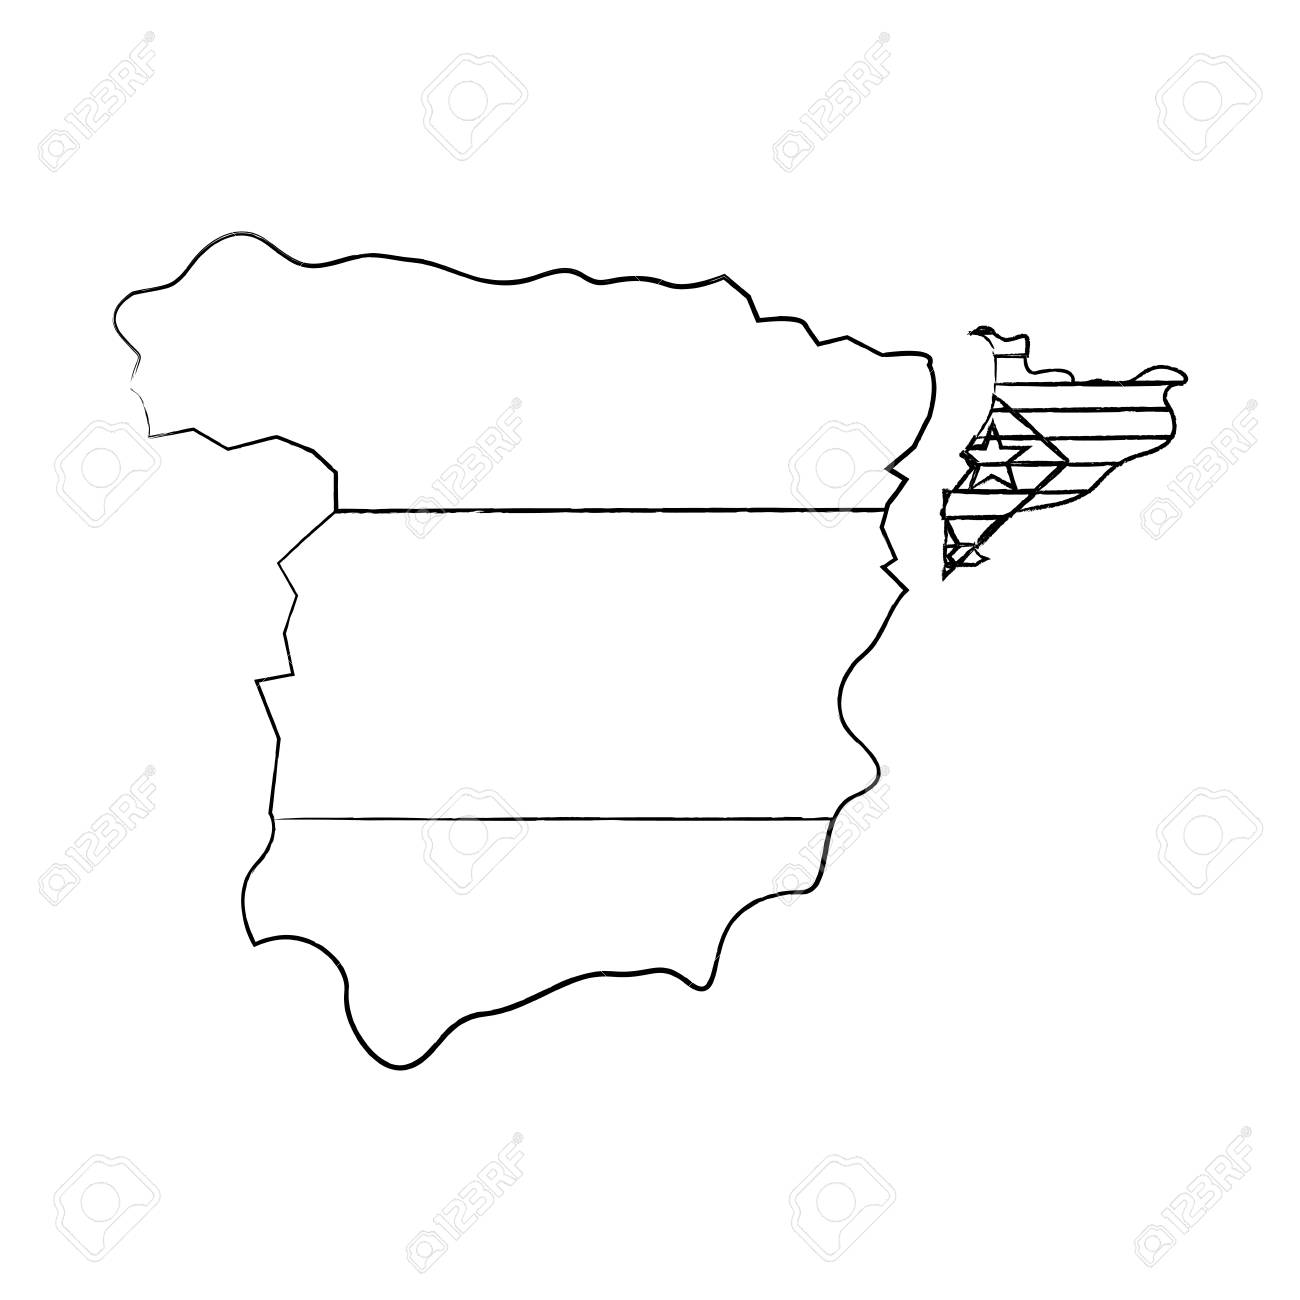 catalunya flag and country outline separated from spain icon Mexico Country Outline catalunya flag and country outline separated from spain icon image vector illustration design stock vector